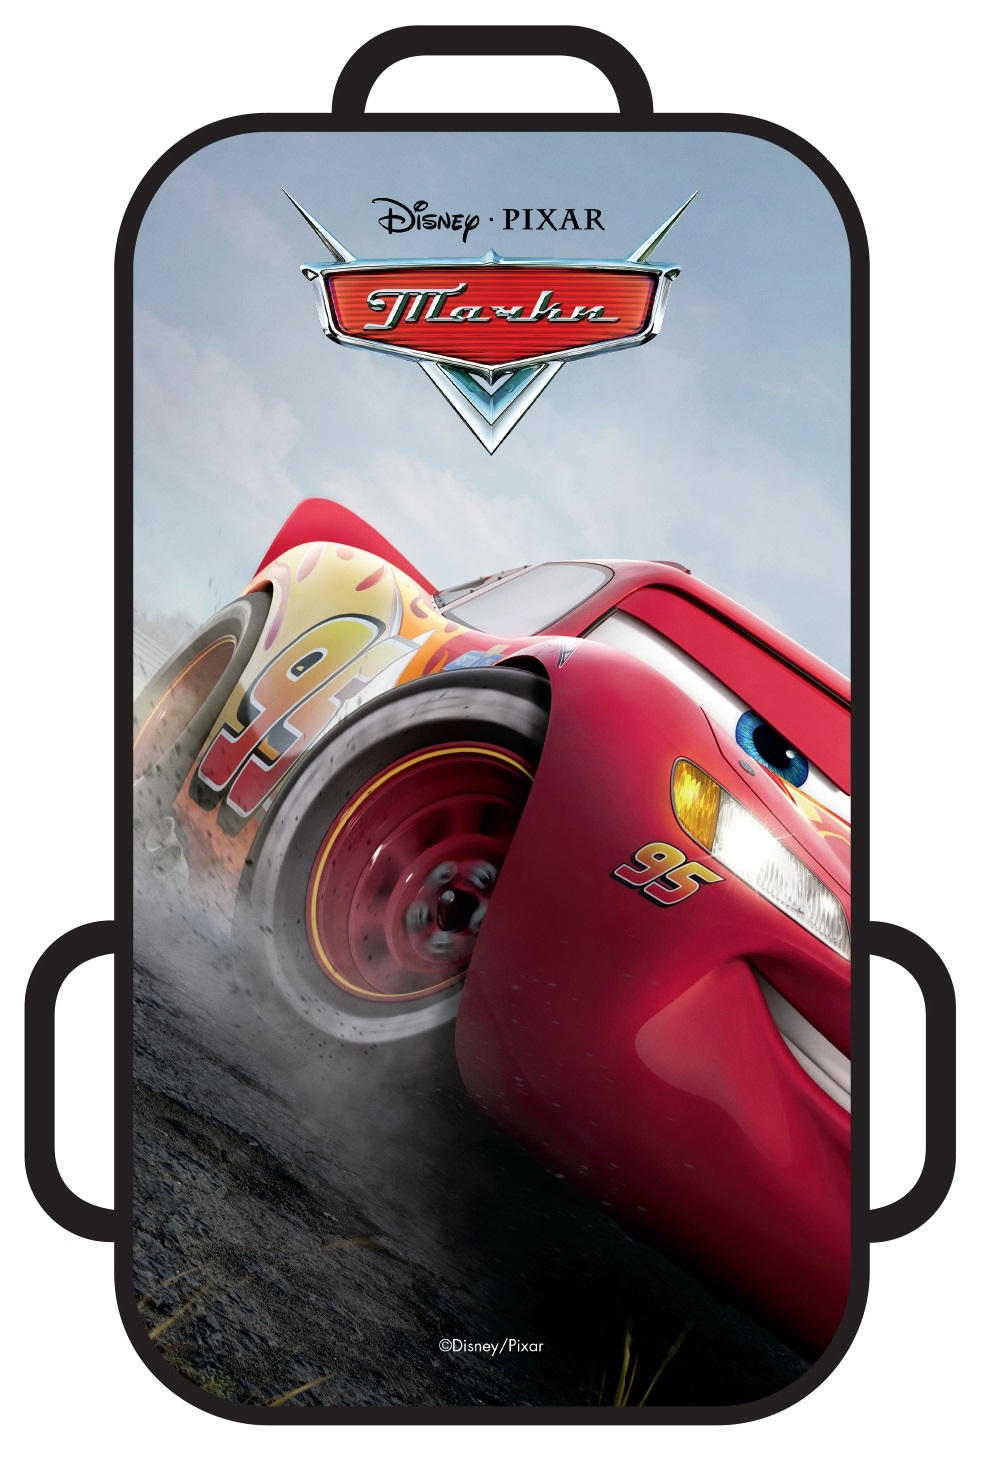 Ледянки Disney Ледянка Disney «Тачки» прямоугольная 72х41 см original gtrs gt200 ii box mod 200w limou chip upgraded version of gt150 electronic cigarette mod 18650 200w vaporizer mode